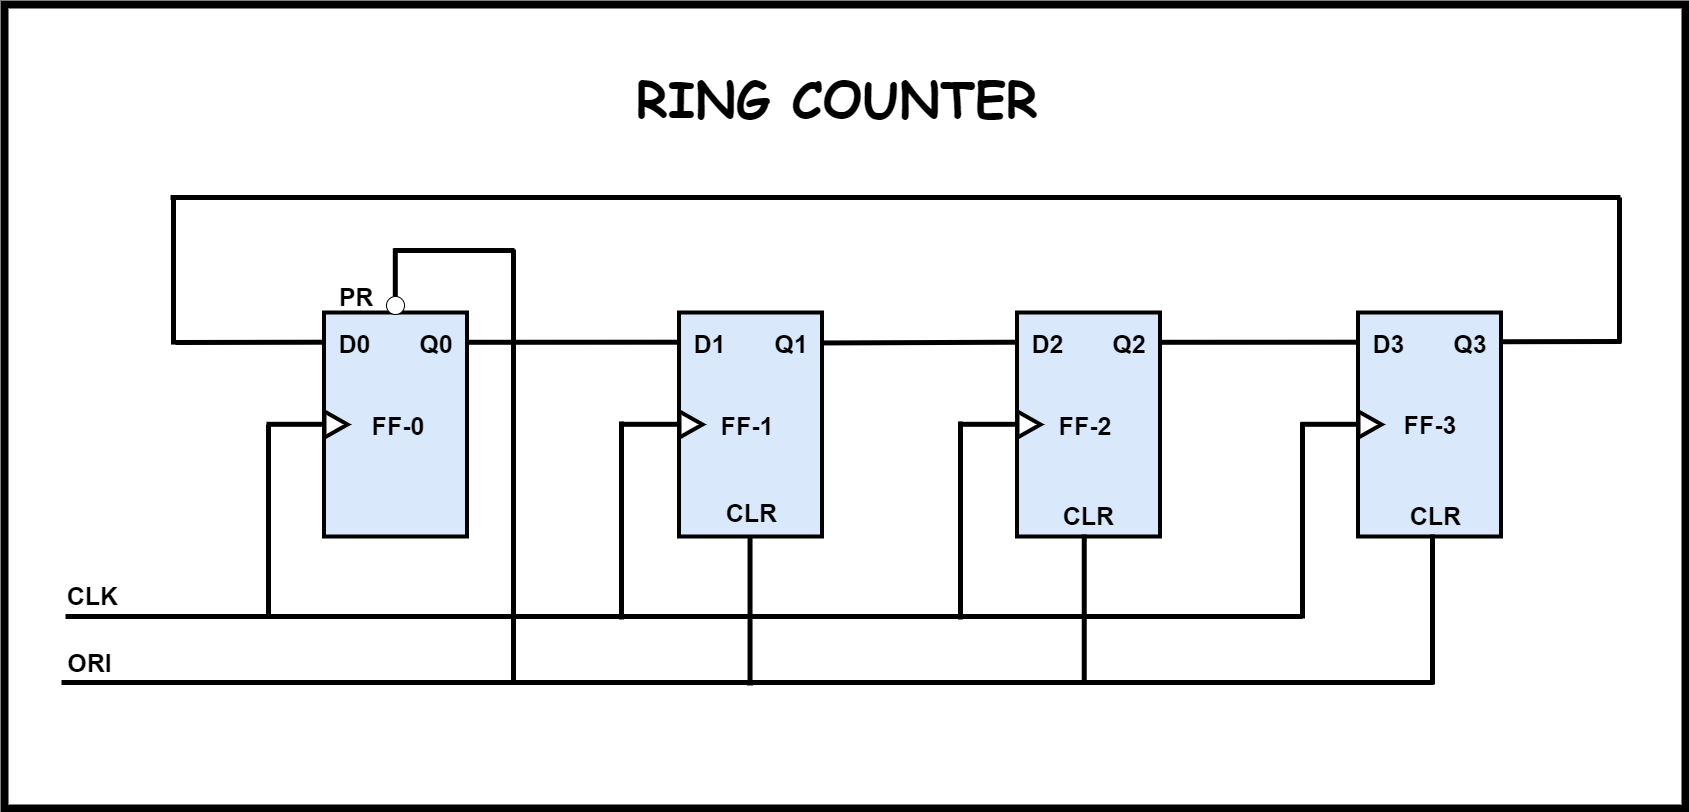 wiring diagram for counter digital counters circuitverse wiring diagram for international 244 tractor digital counters circuitverse